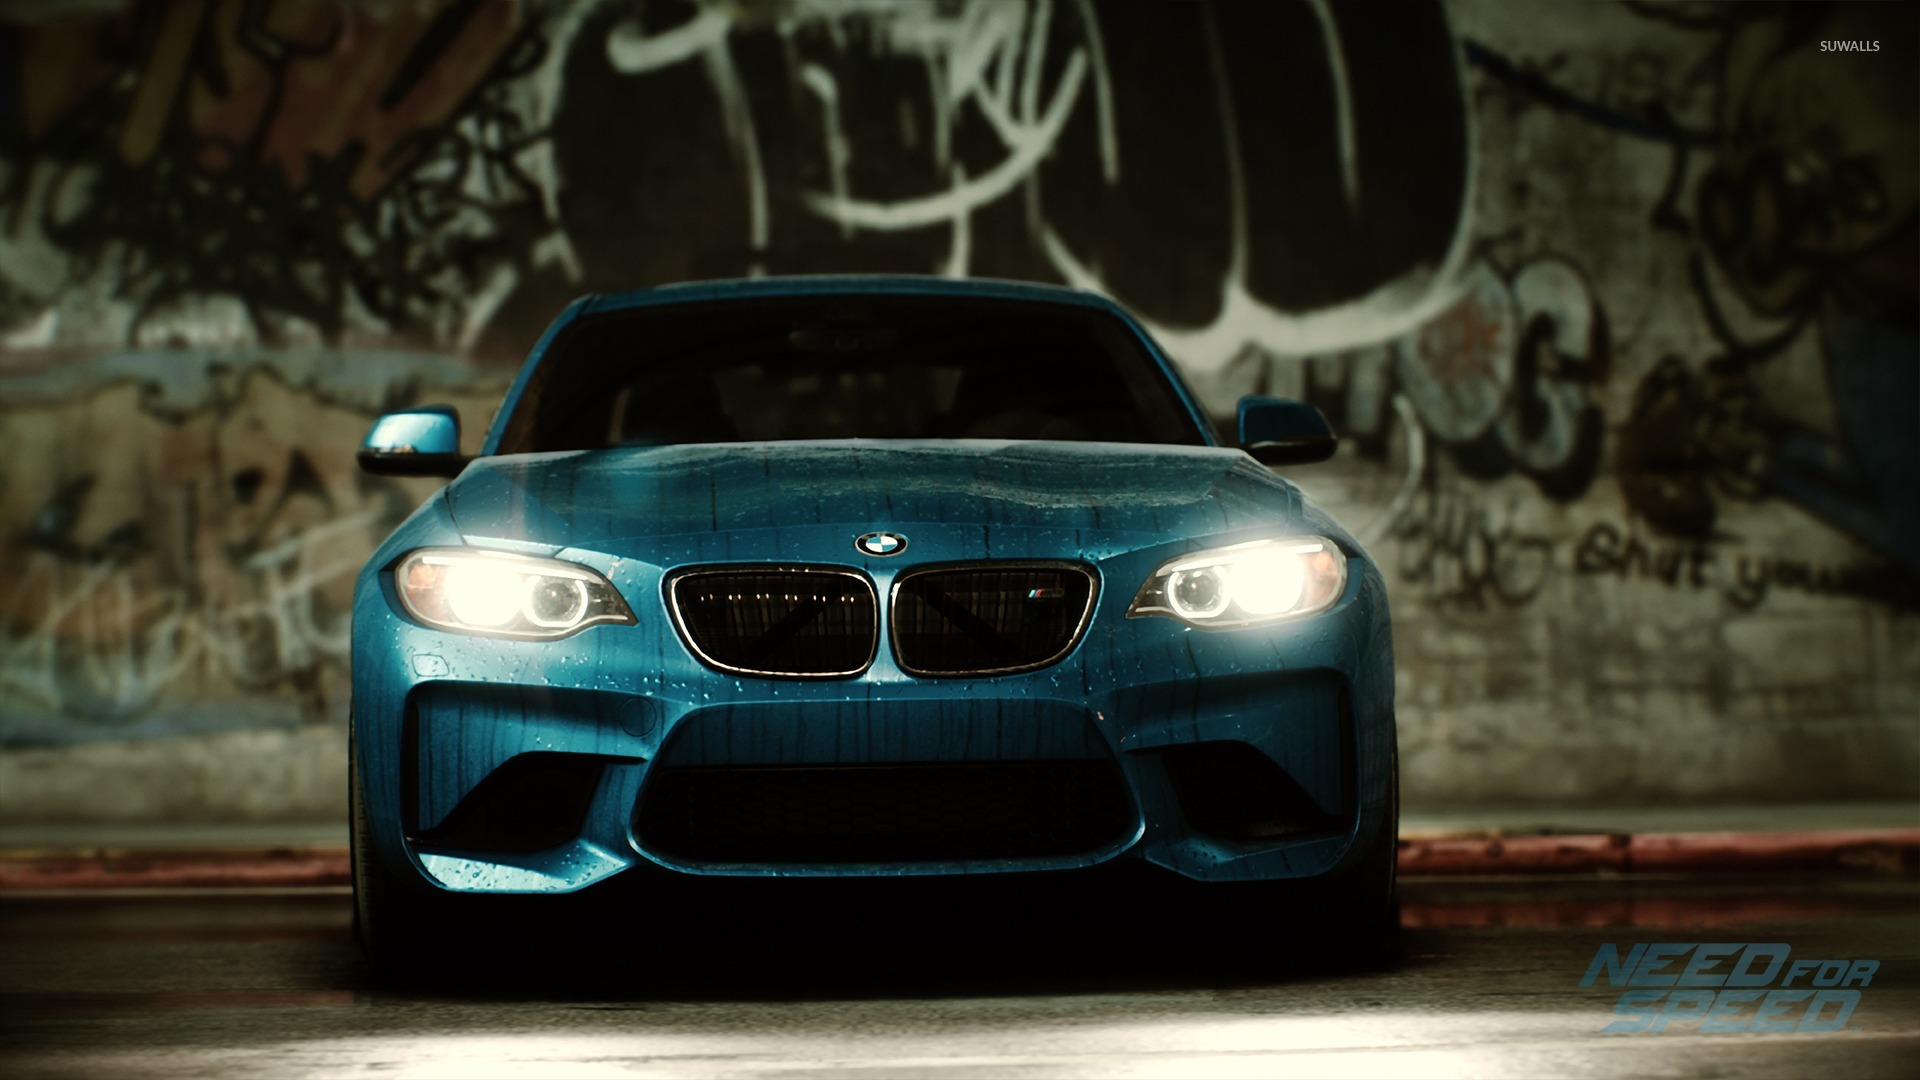 1920x1080 - BMW M2 Coupe Wallpapers 33